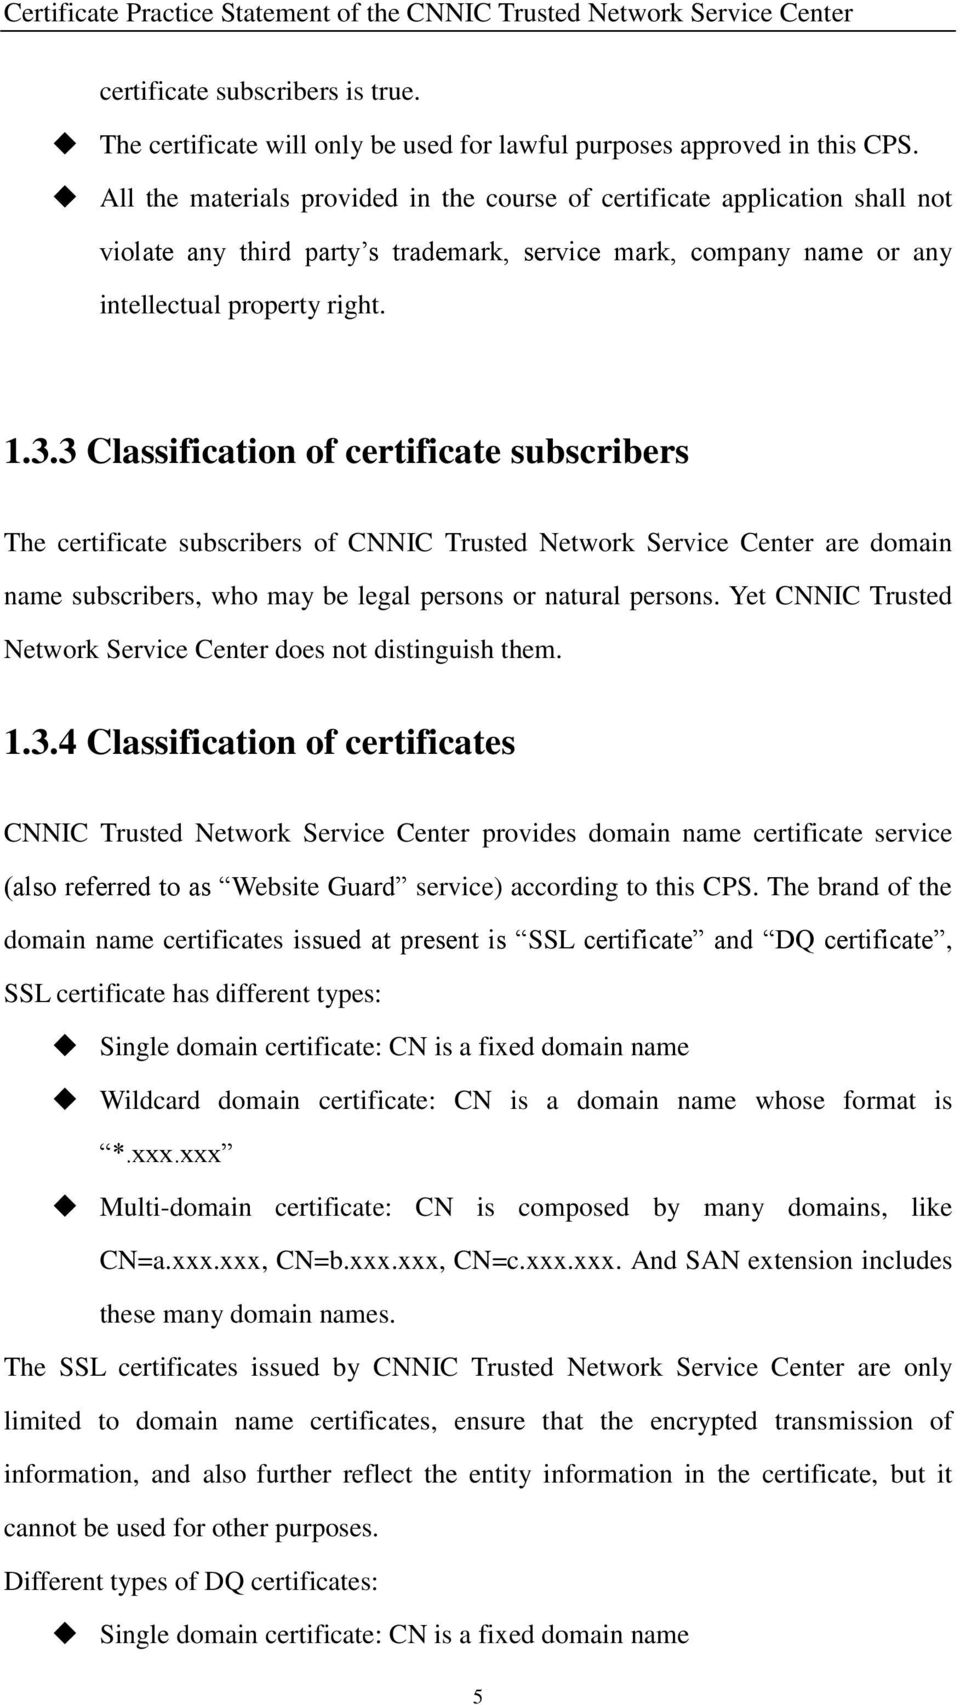 3 Classification of certificate subscribers The certificate subscribers of CNNIC Trusted Network Service Center are domain name subscribers, who may be legal persons or natural persons.